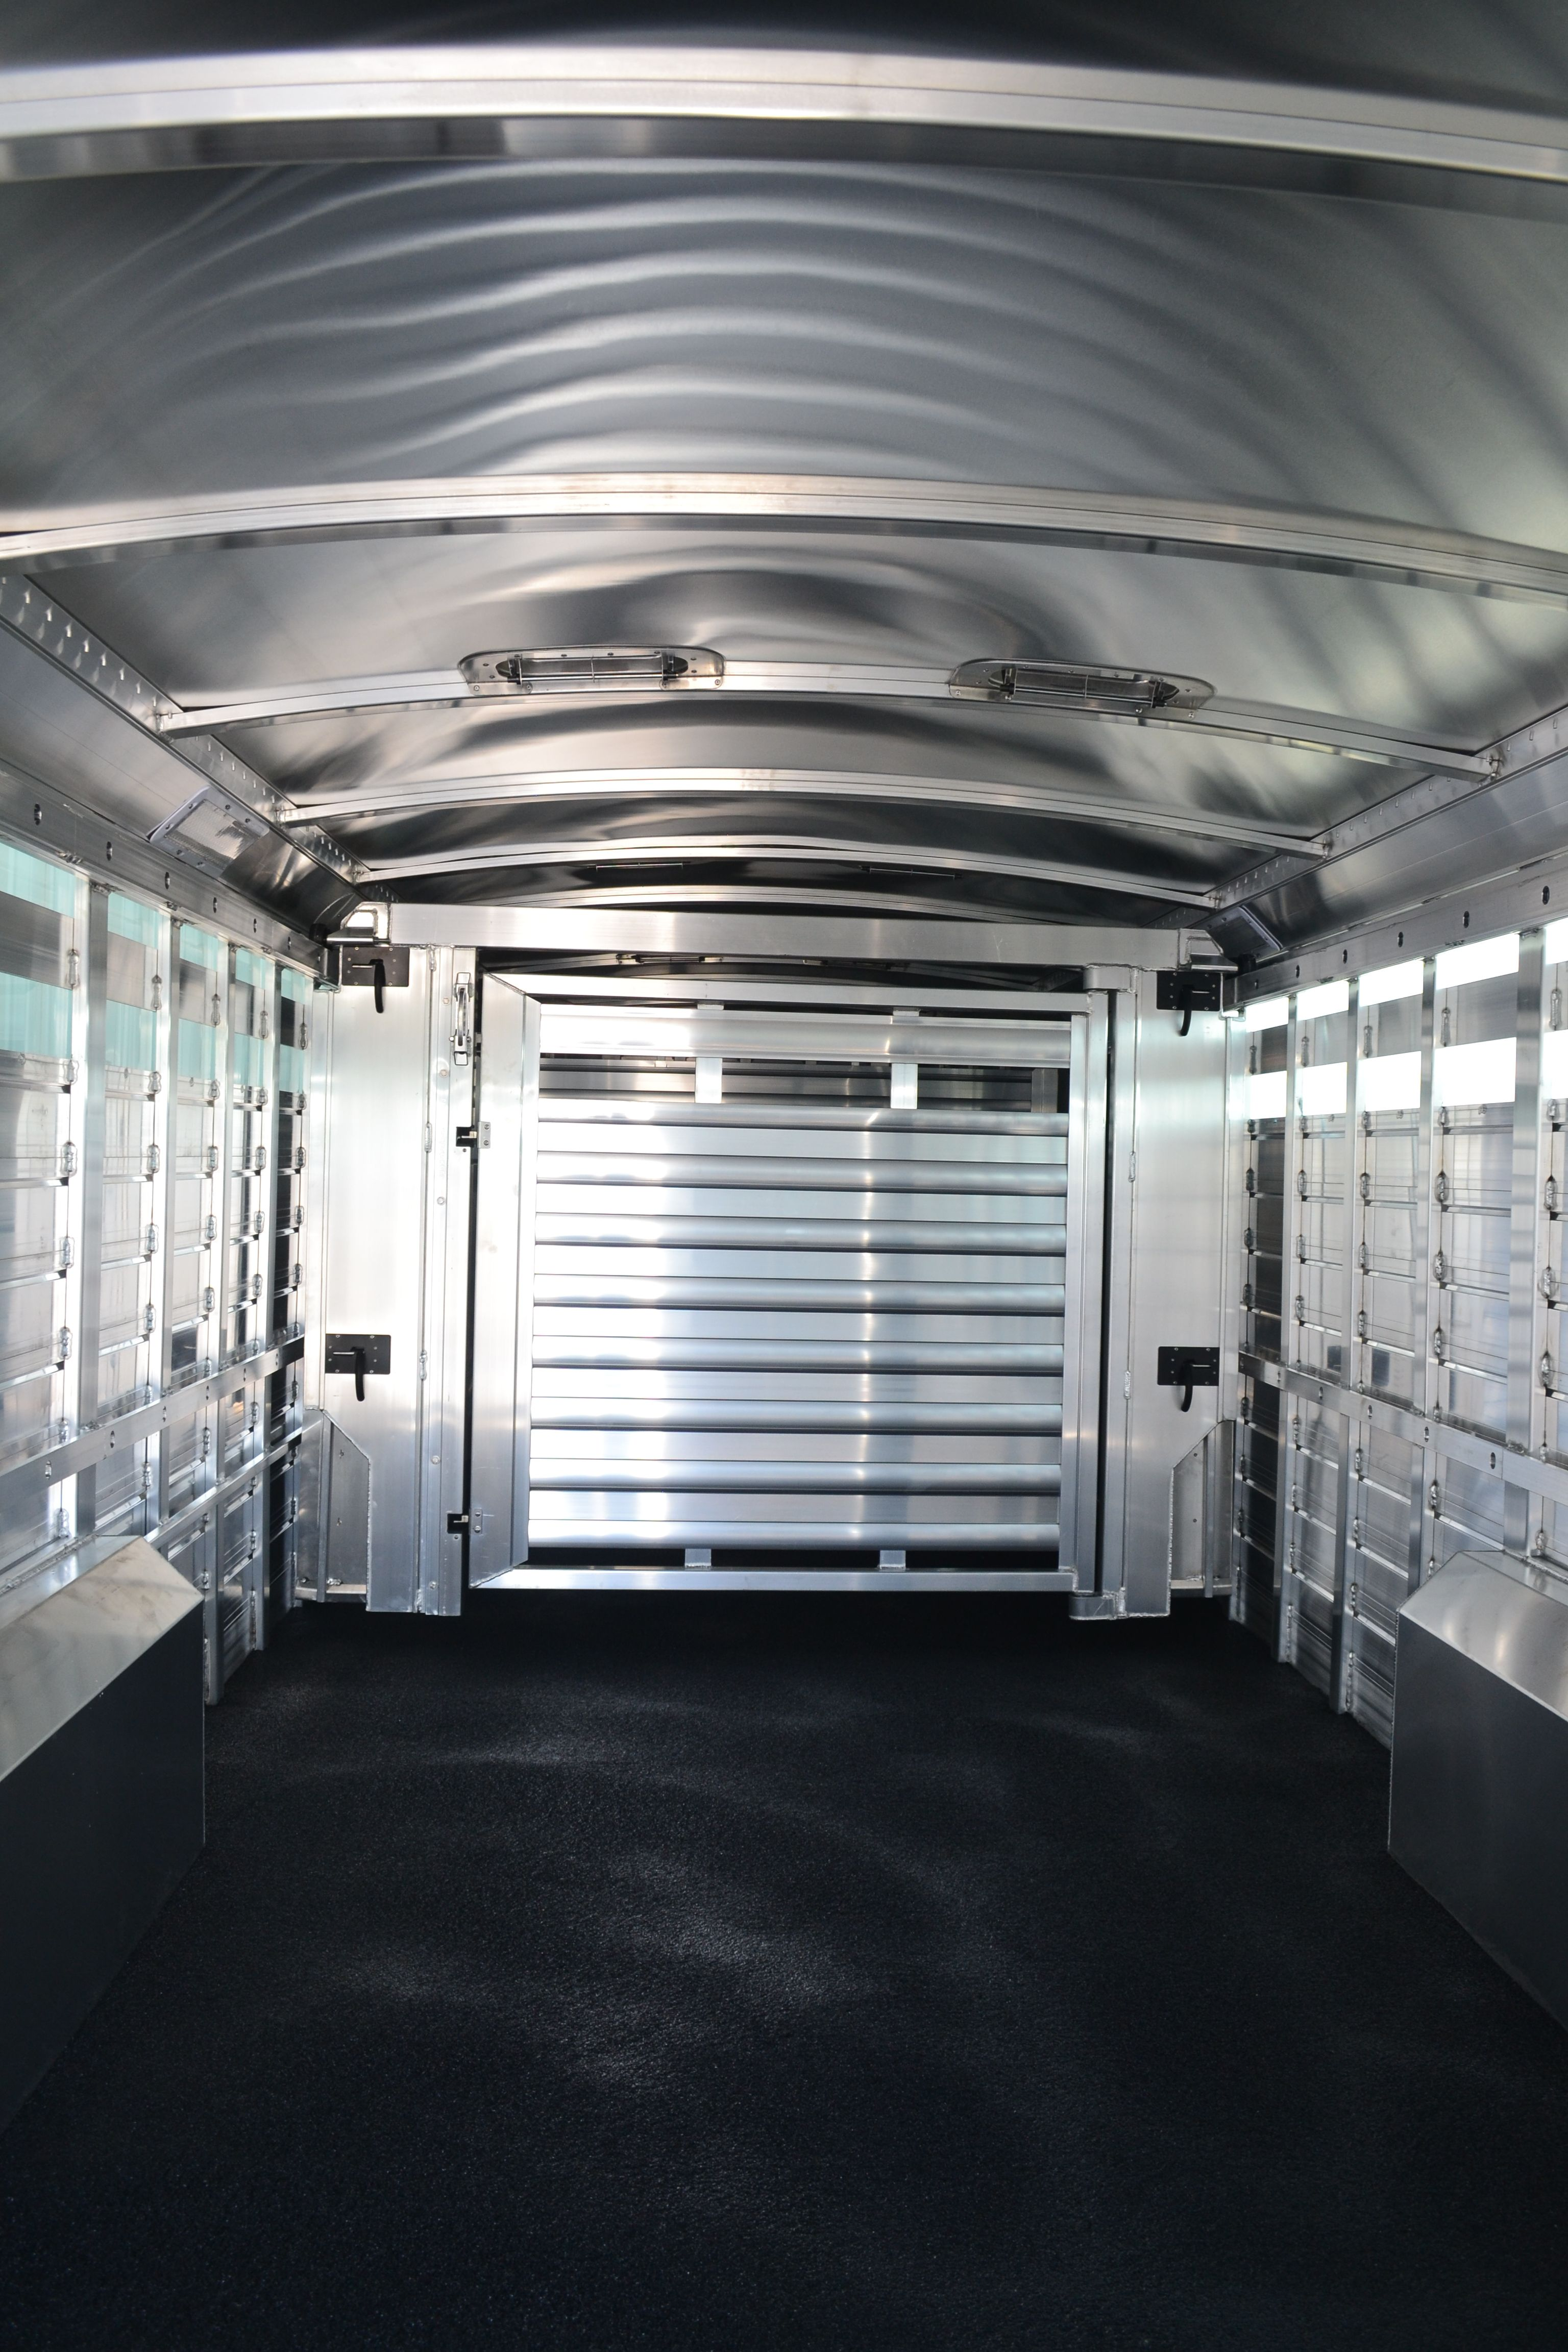 2015 4 Star Stock Trailer 8 Wide X 6 Tall Floating Gate With Werm Flooring Livestock Trailers Stock Trailer Cattle Trailers